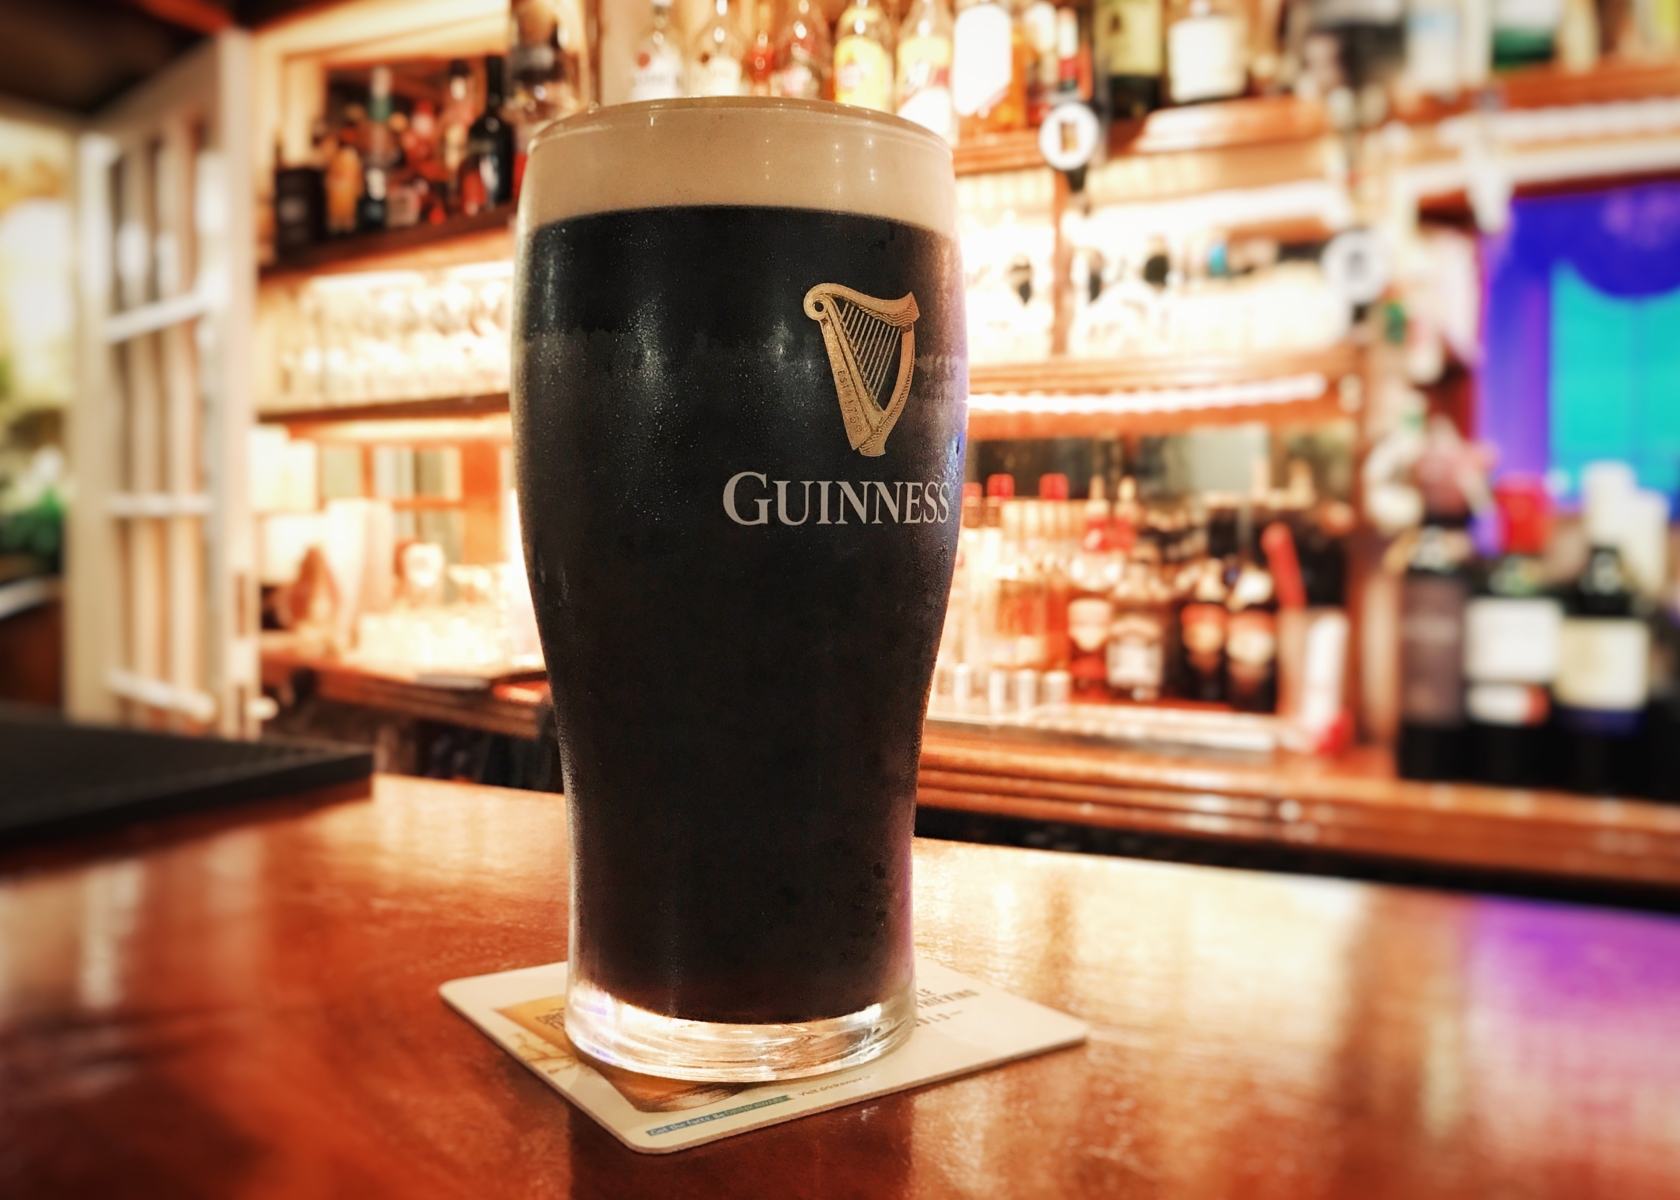 A pint of Guinness in The Haven Hotel, Dunmore East, County Waterford, Ireland